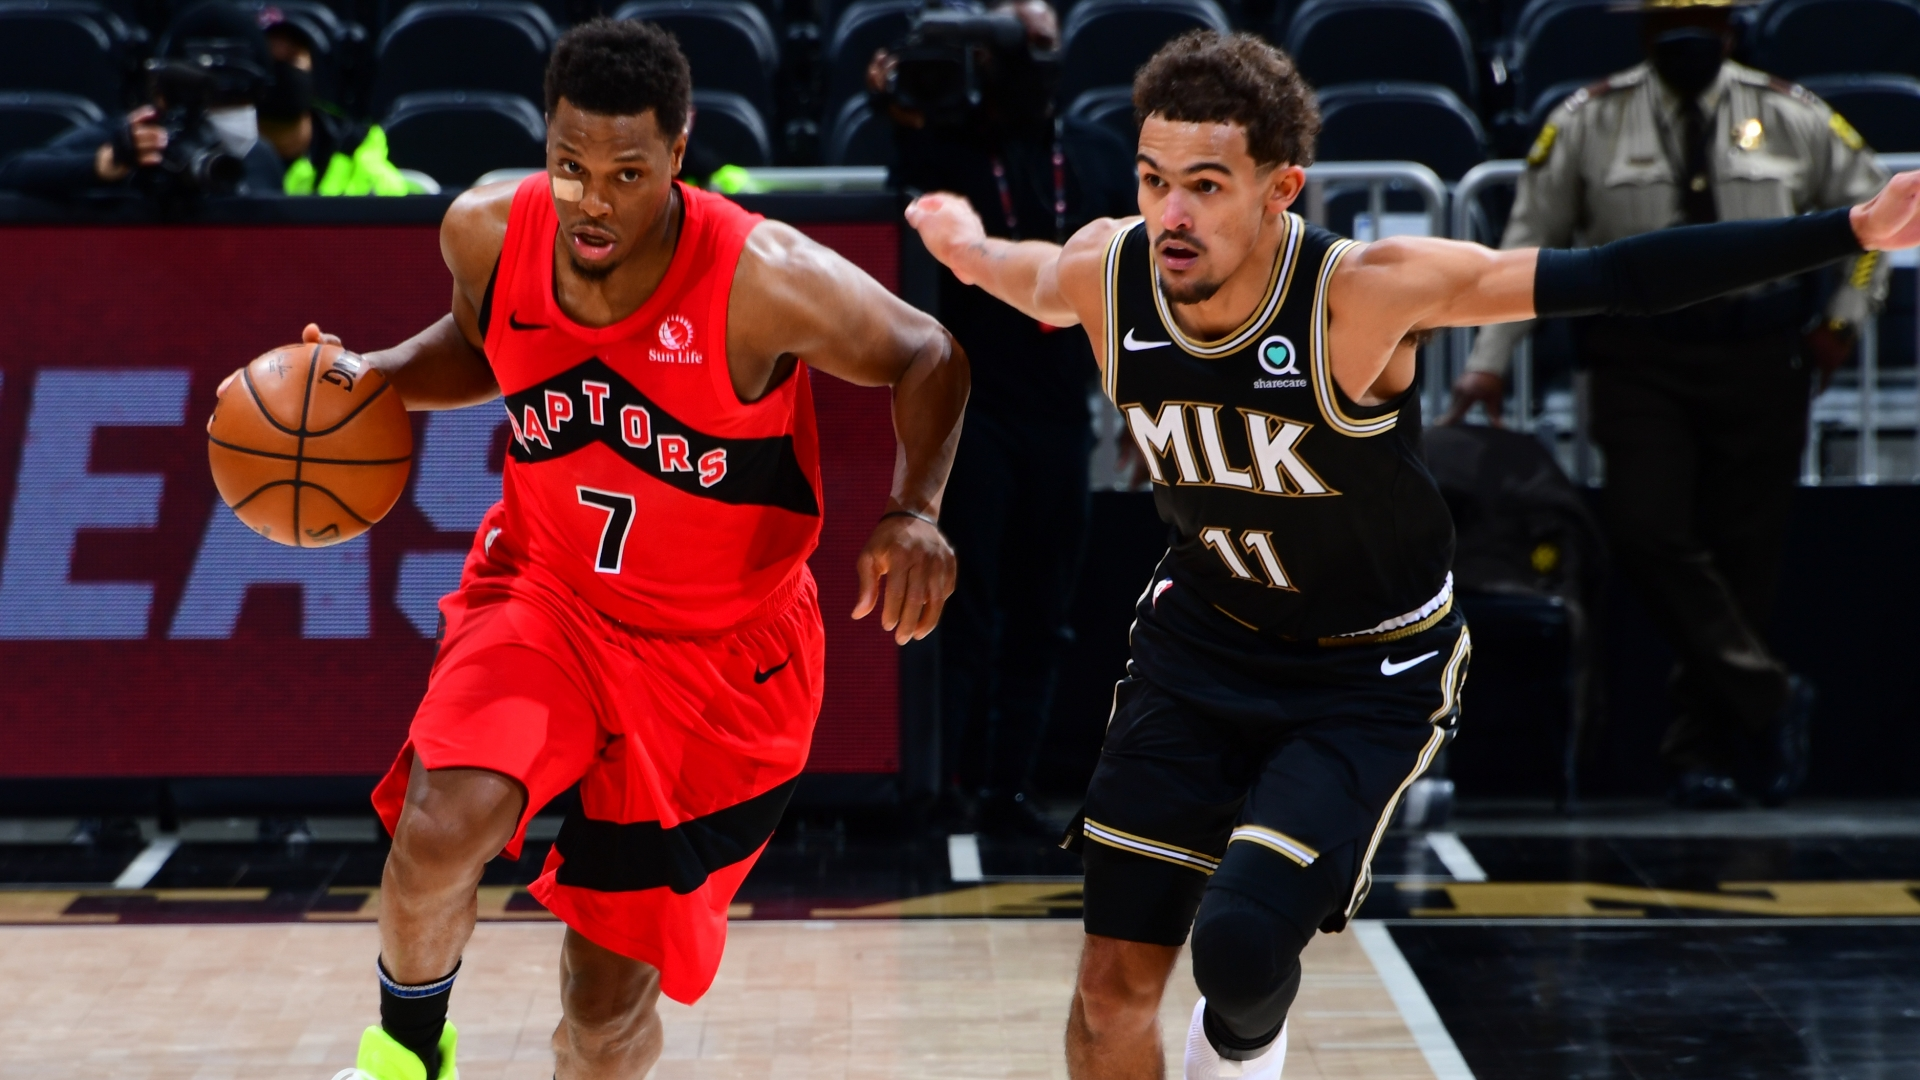 Toronto Raptors vs. Atlanta Hawks: Game preview, injury report, TV channel, start time and odds   NBA.com Canada   The official site of the NBA